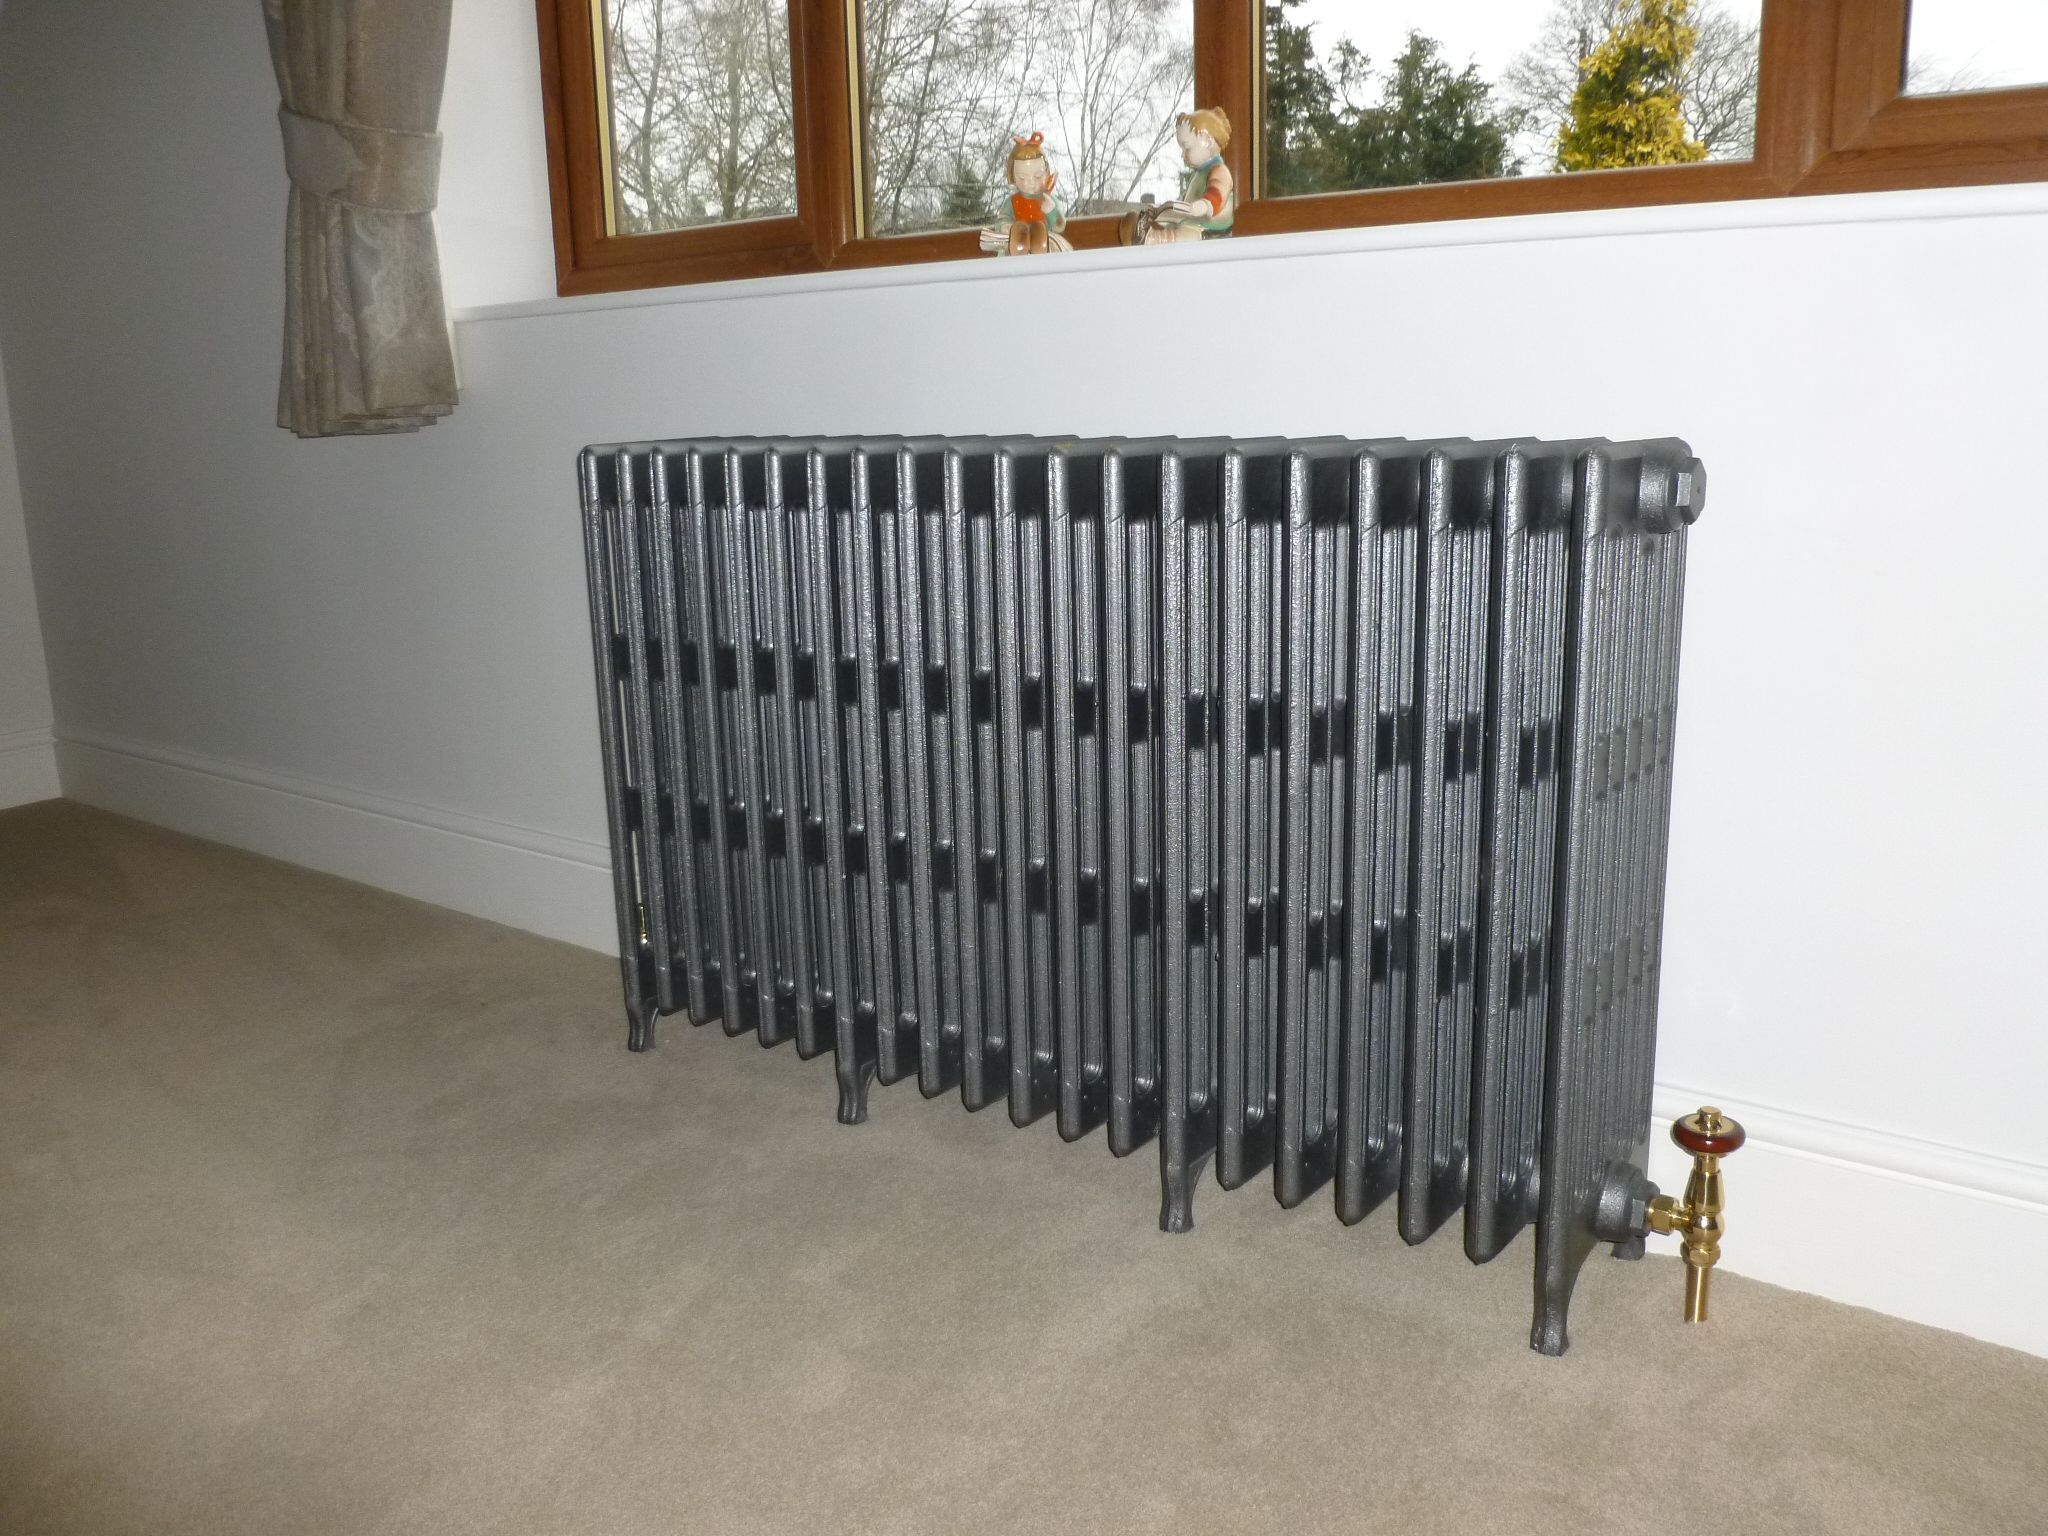 carron cast iron radiators sprayed in a foundry grey finish and